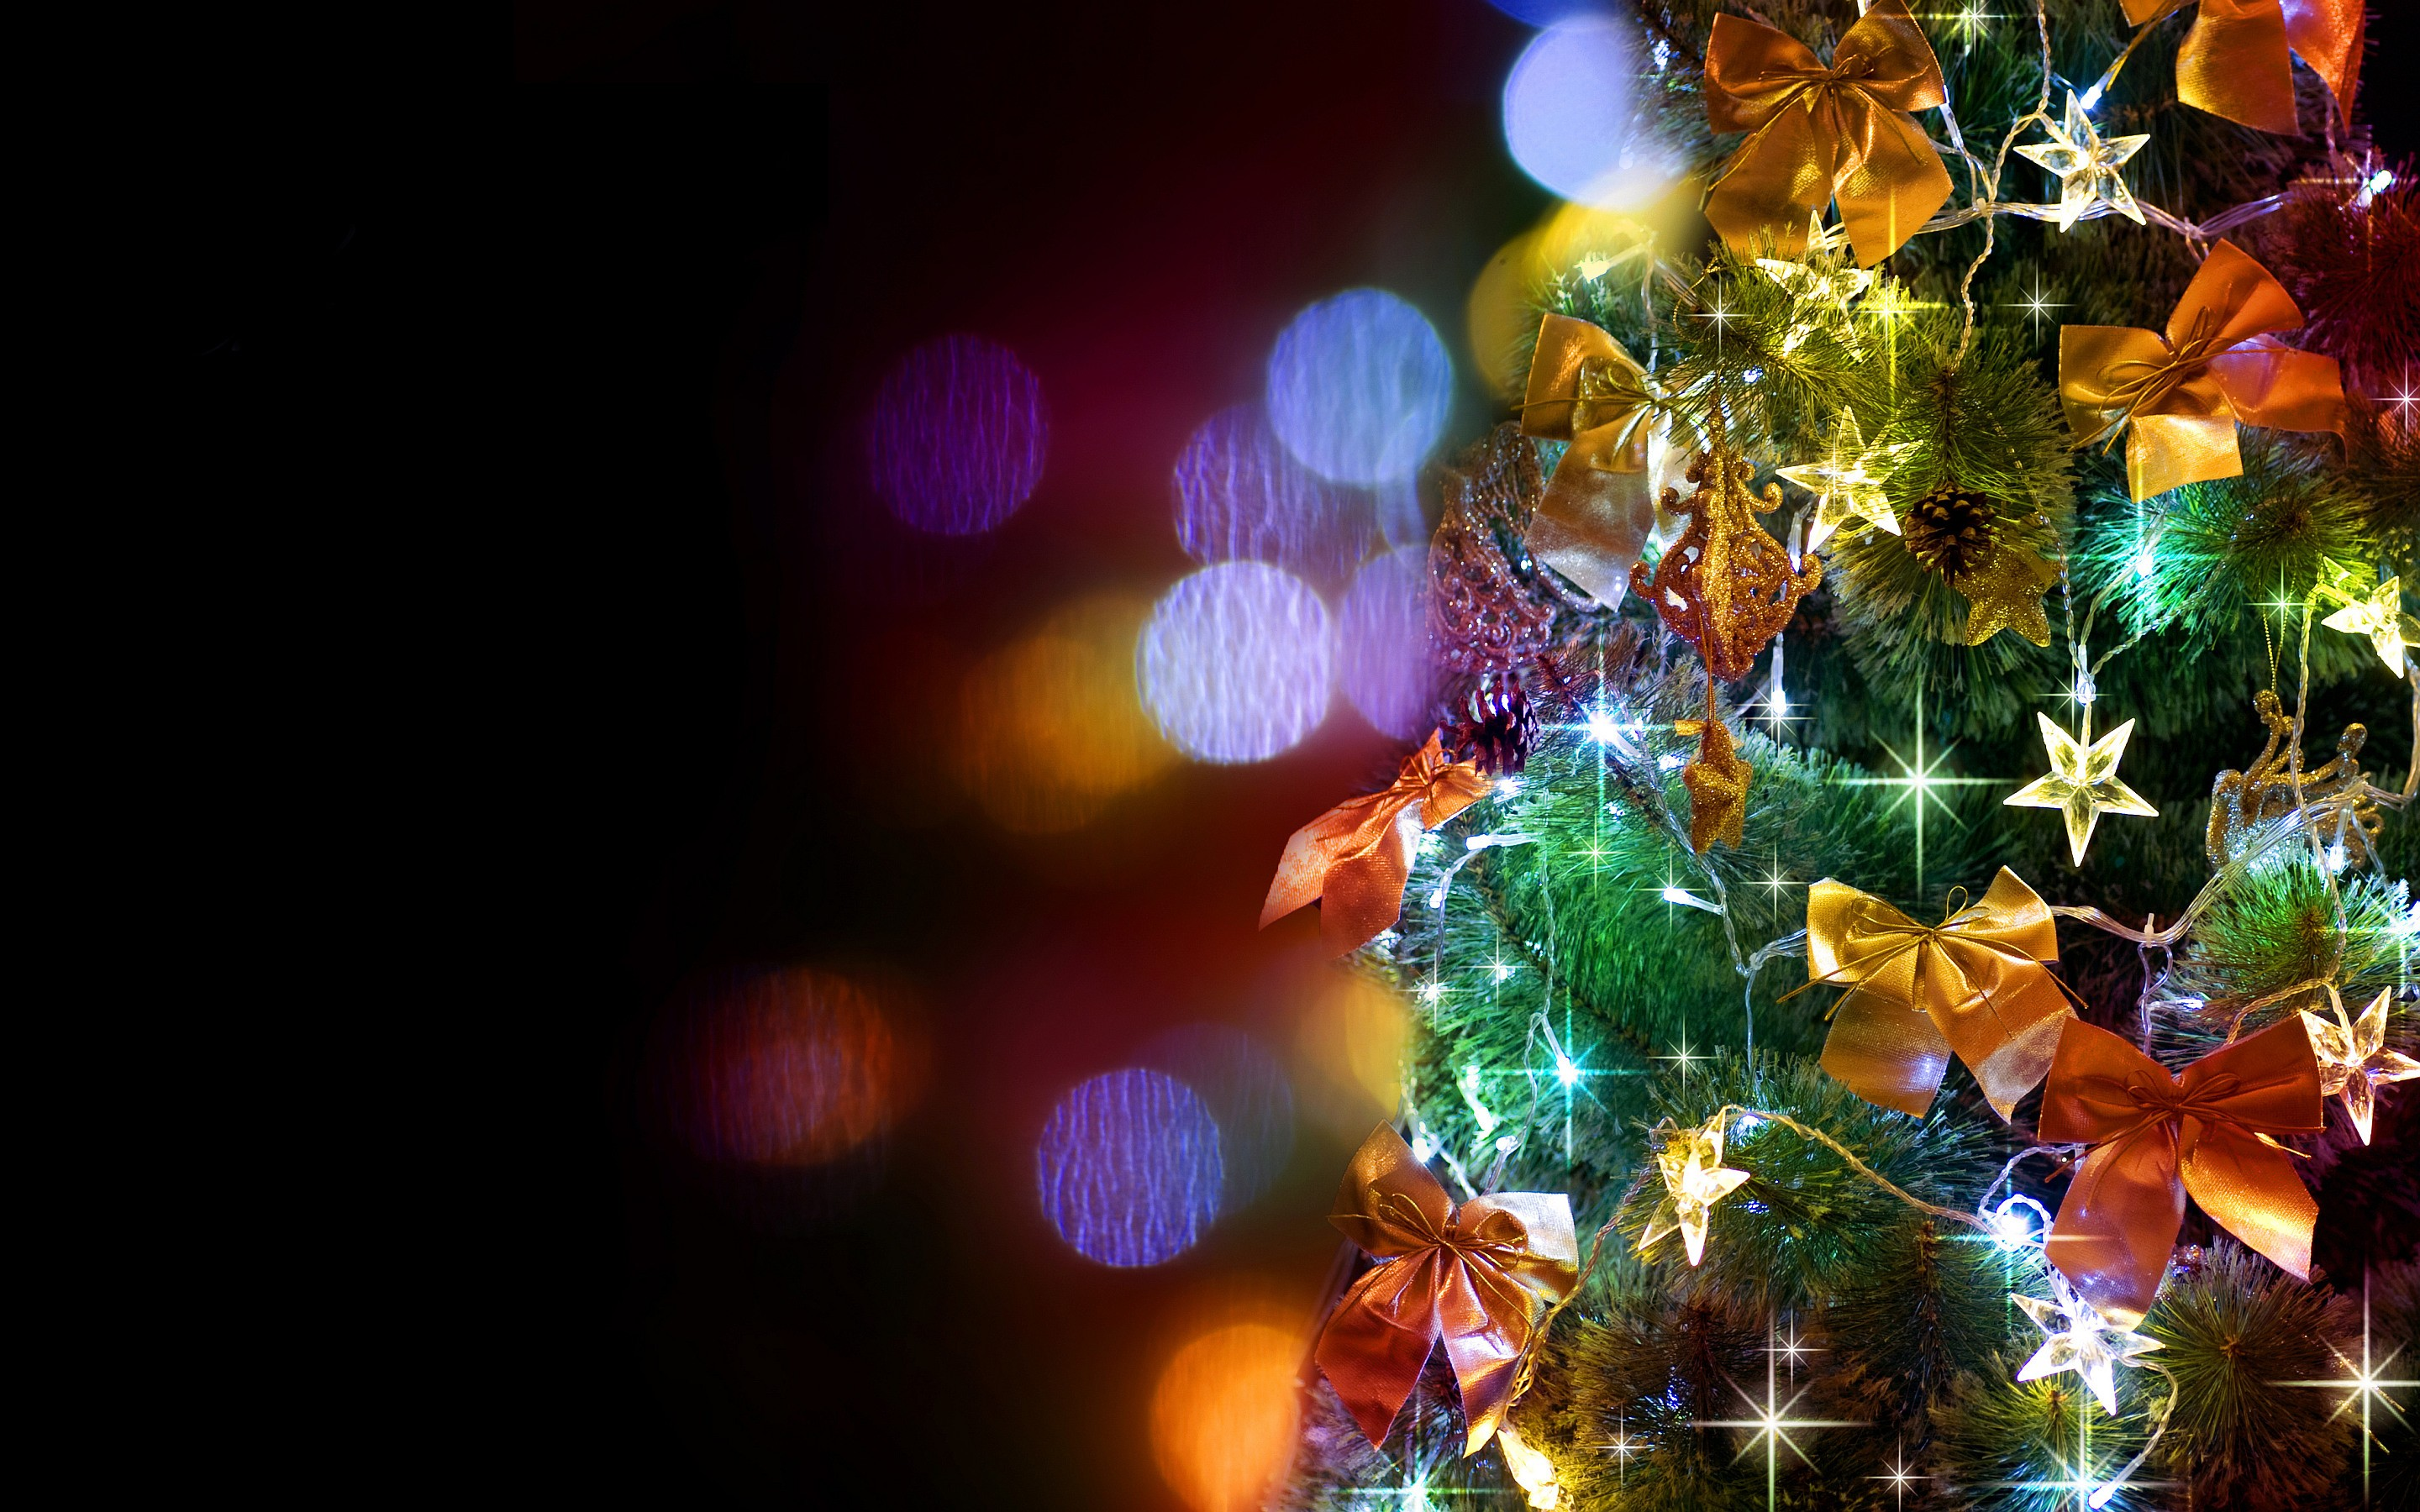 Hd Christmas Wallpaper.76 Christmas Wallpapers On Wallpapersafari